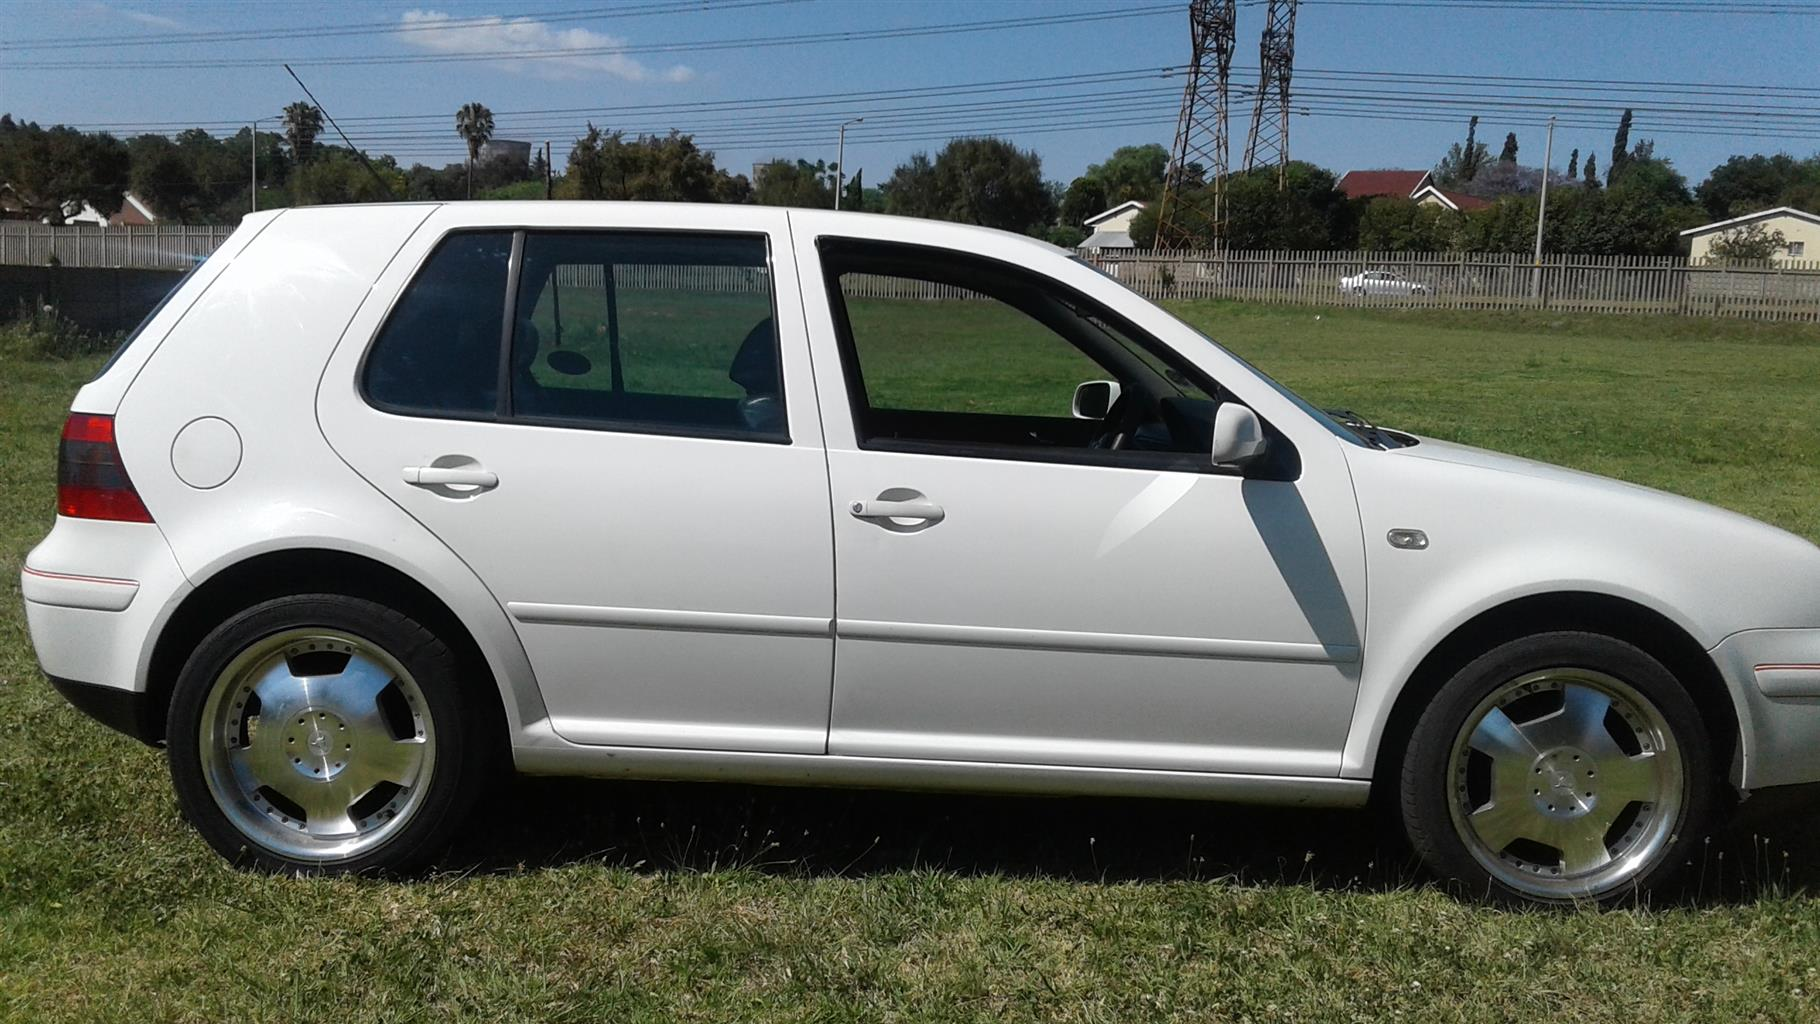 Golf 4 2.0 Hi-Line. Sunroof, leather and great mags. Fully reconditioned engine with guarantee